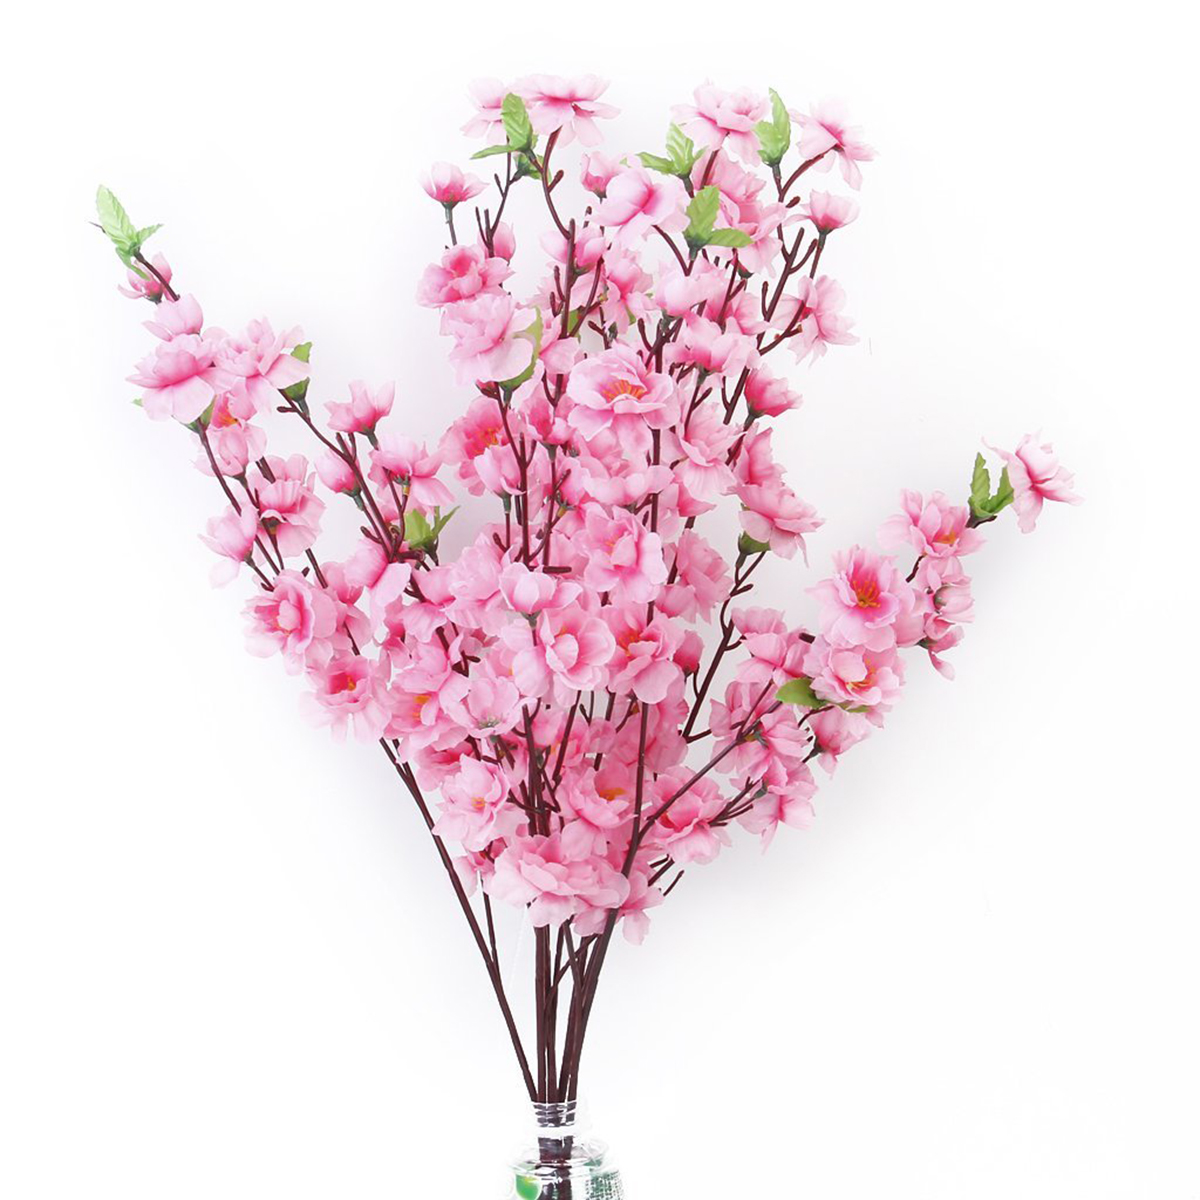 6pcs peach blossom simulation flowers artificial flowers silk flower decorative flowers wreaths pink in decorative flowers wreaths from home garden on - Decorative Flowers